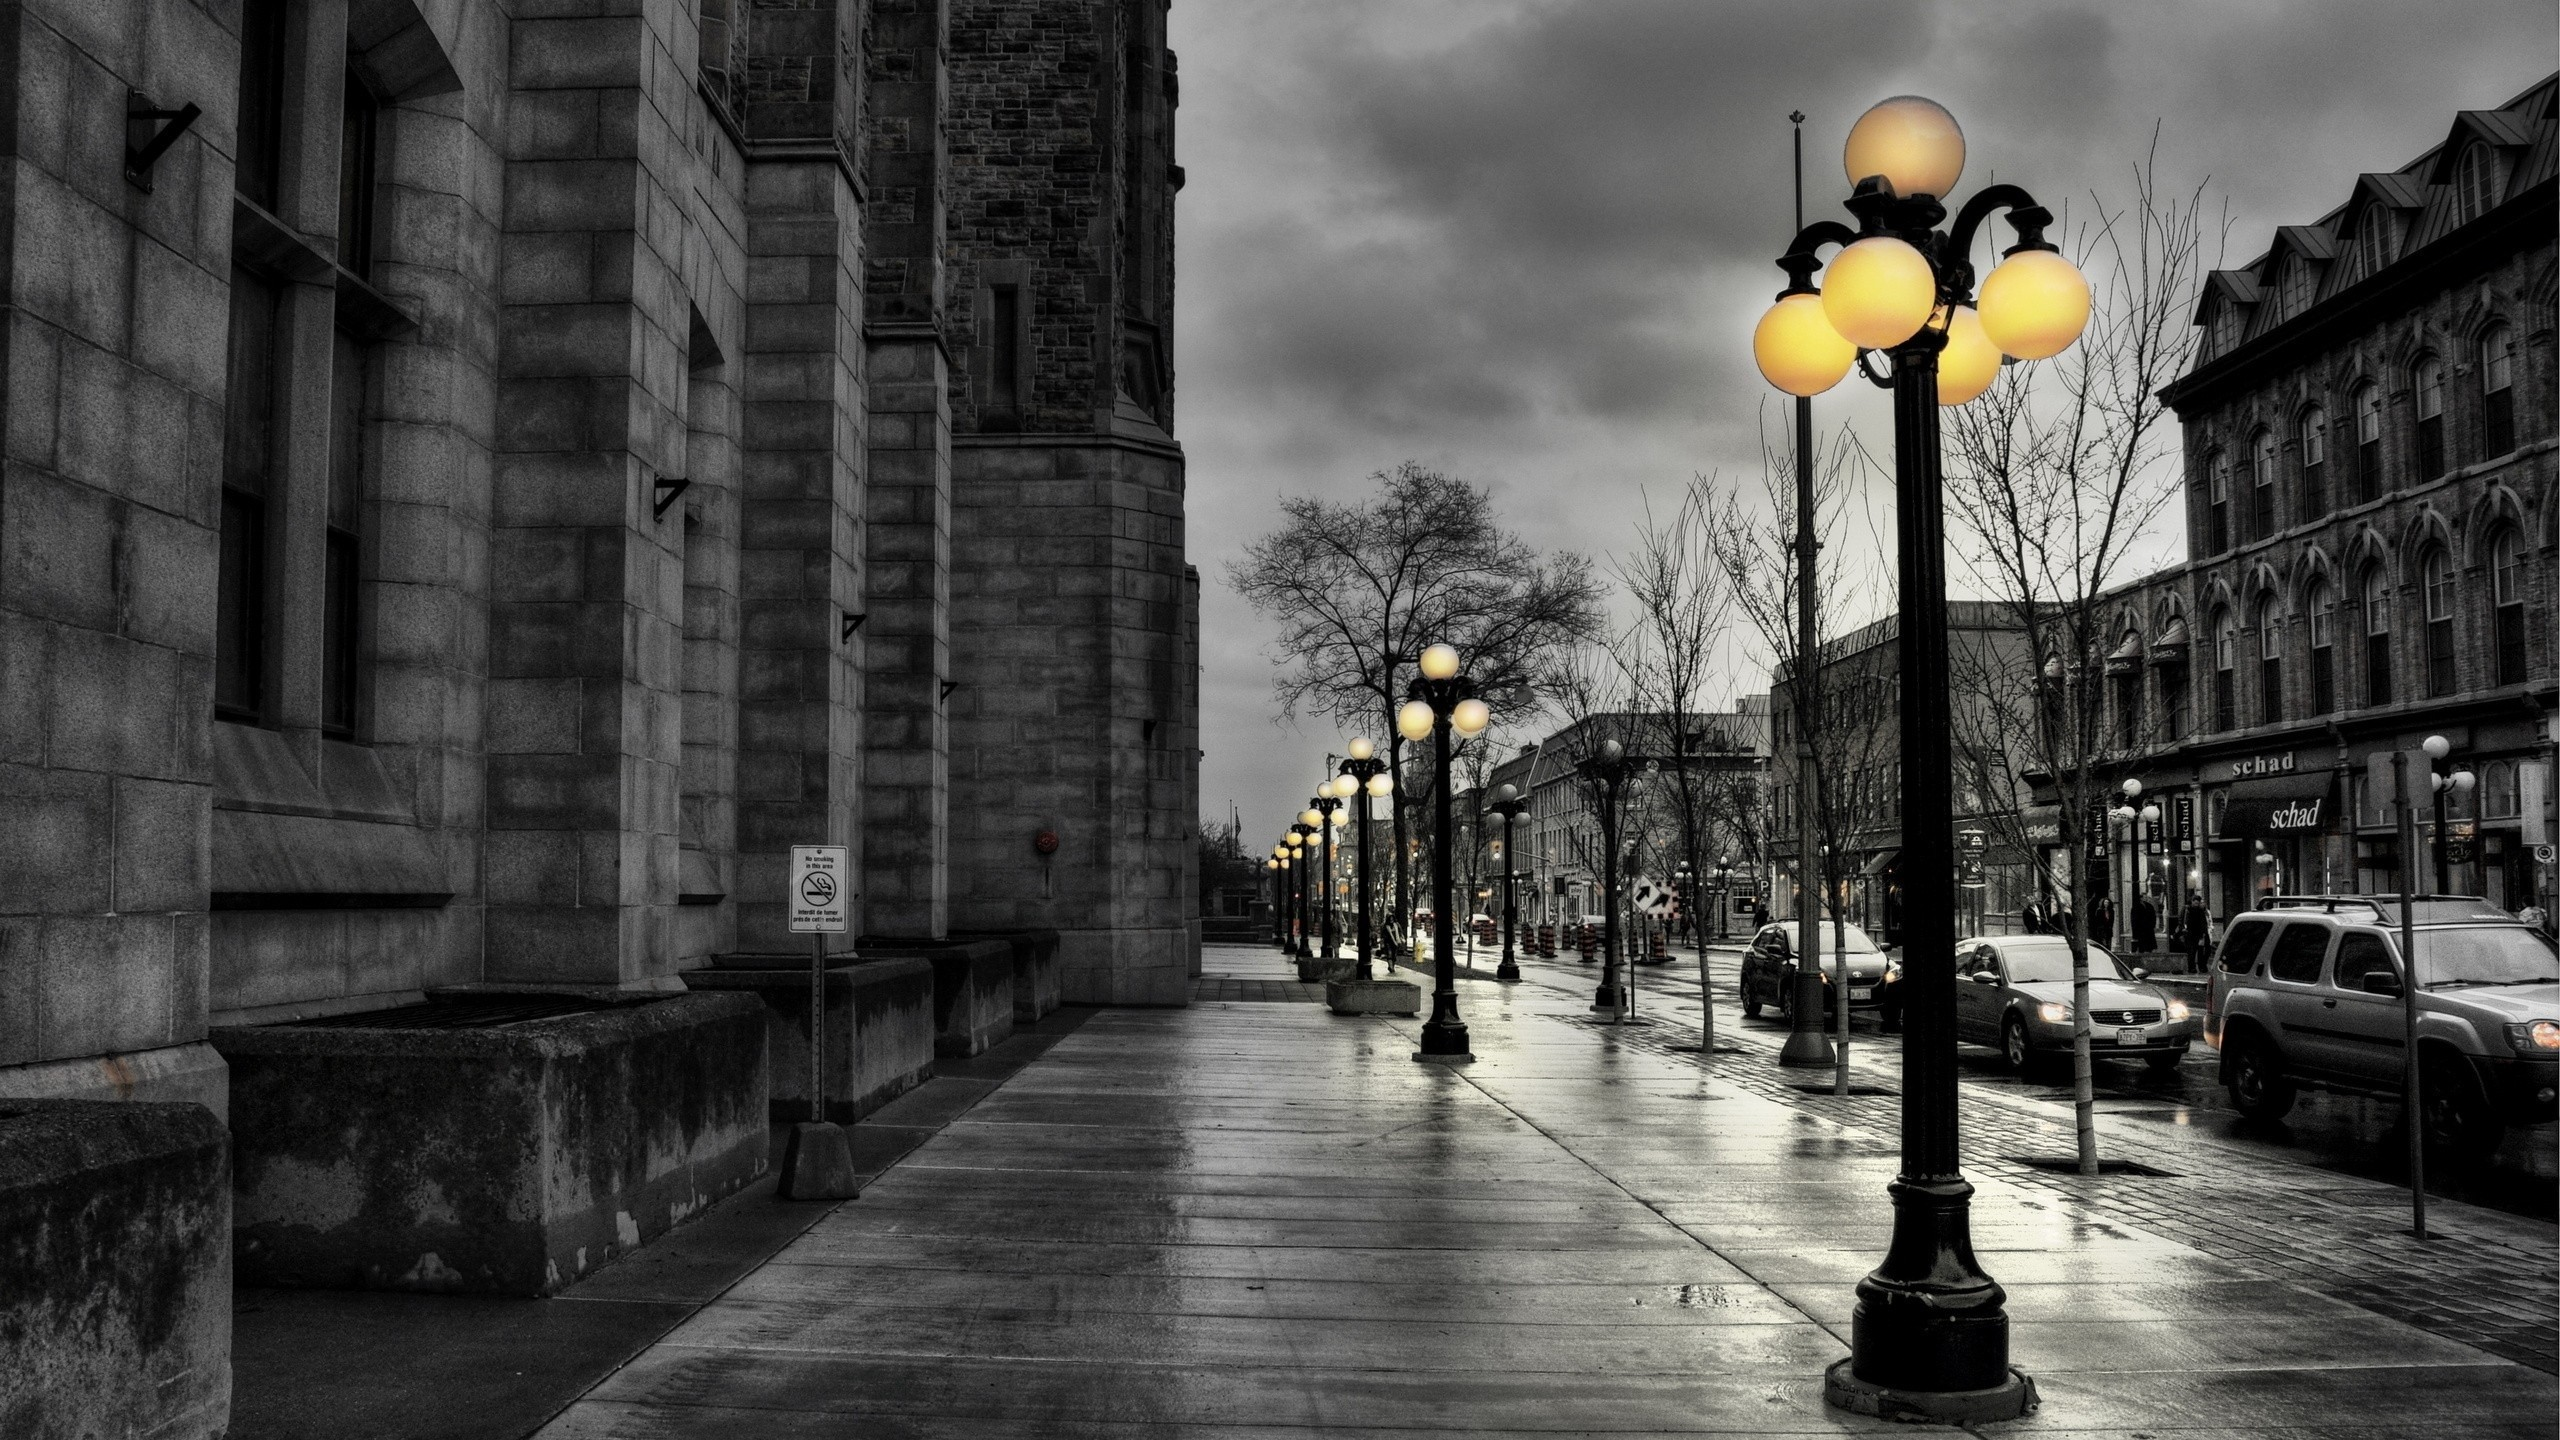 2560x1440 Preview wallpaper street, city, evening, black white, lights, buildings, hdr